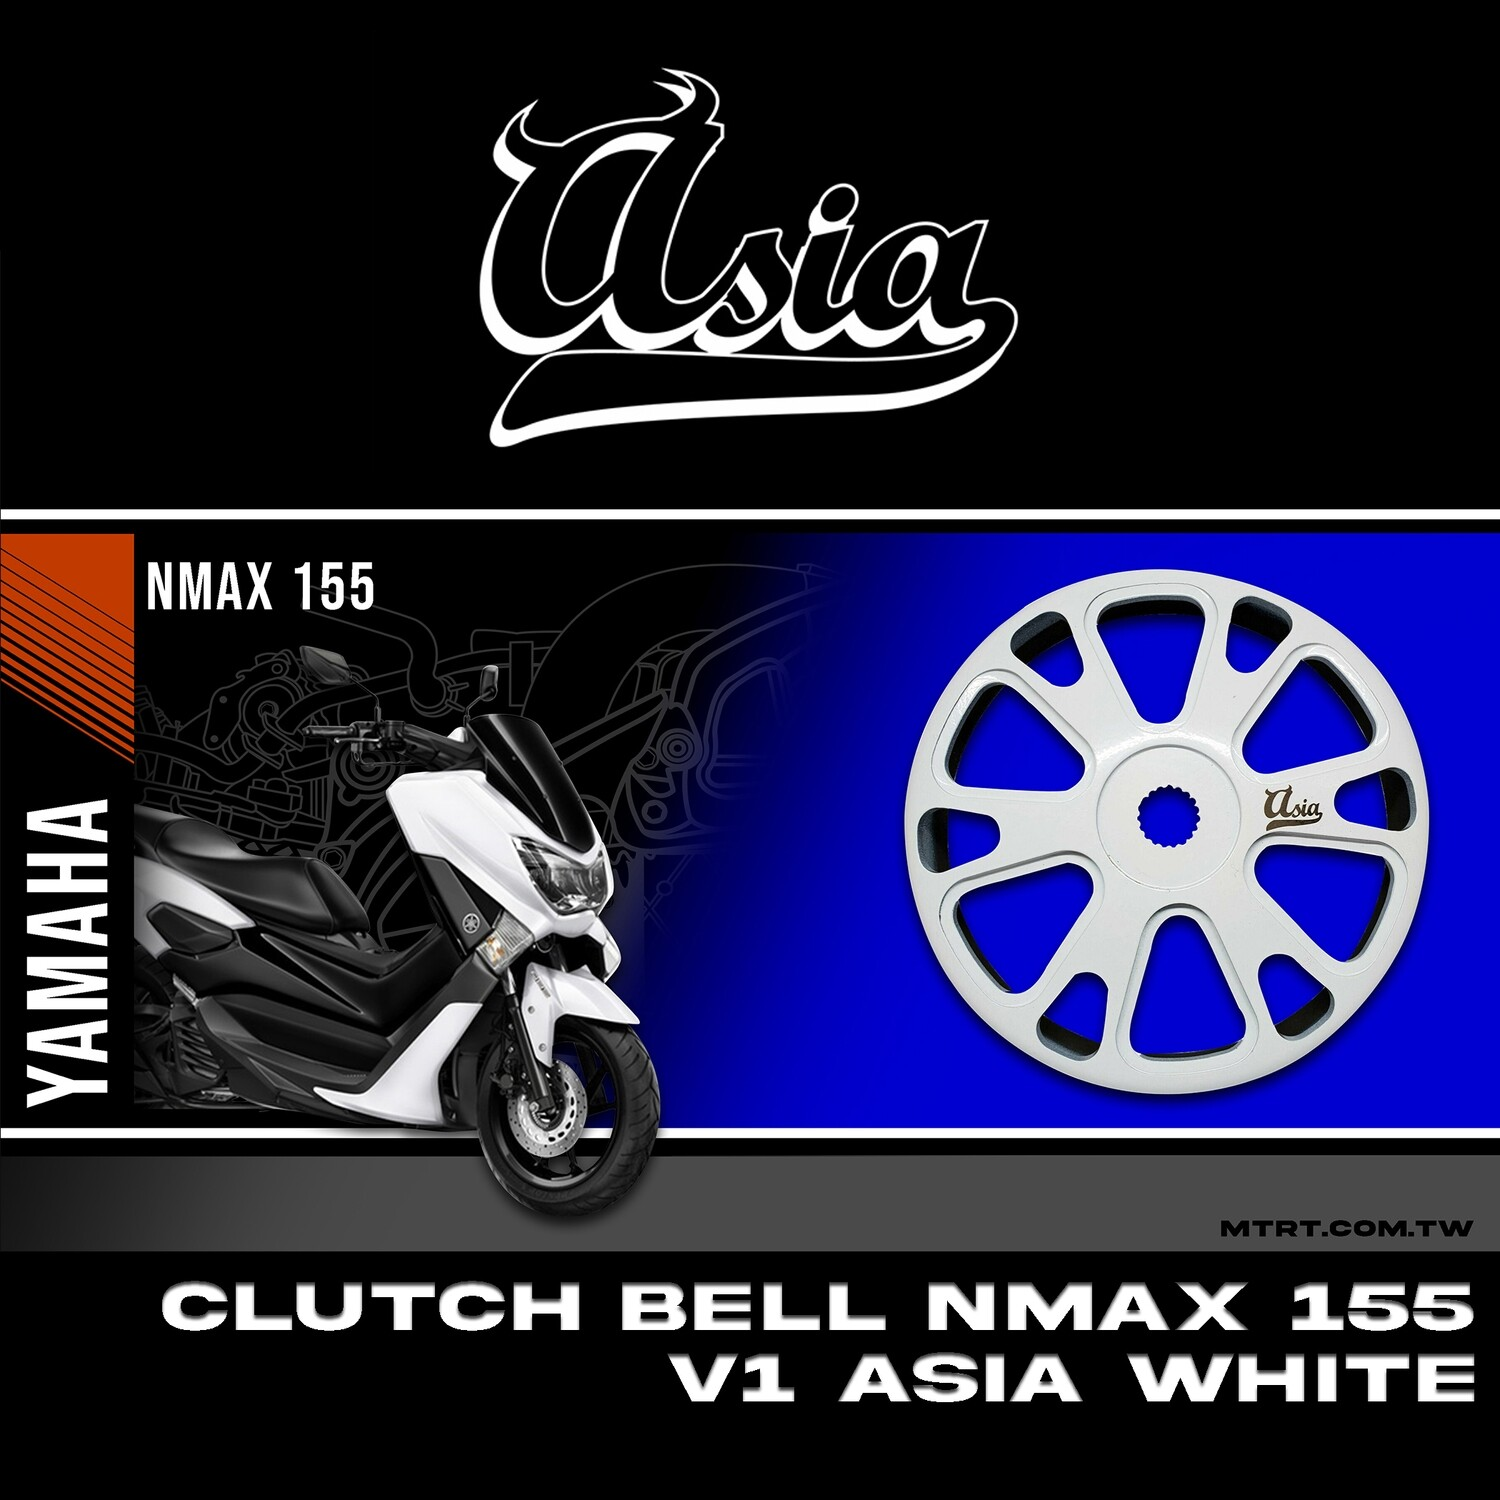 CLUTCH BELL NMAX155  V1 ASIA WHITE